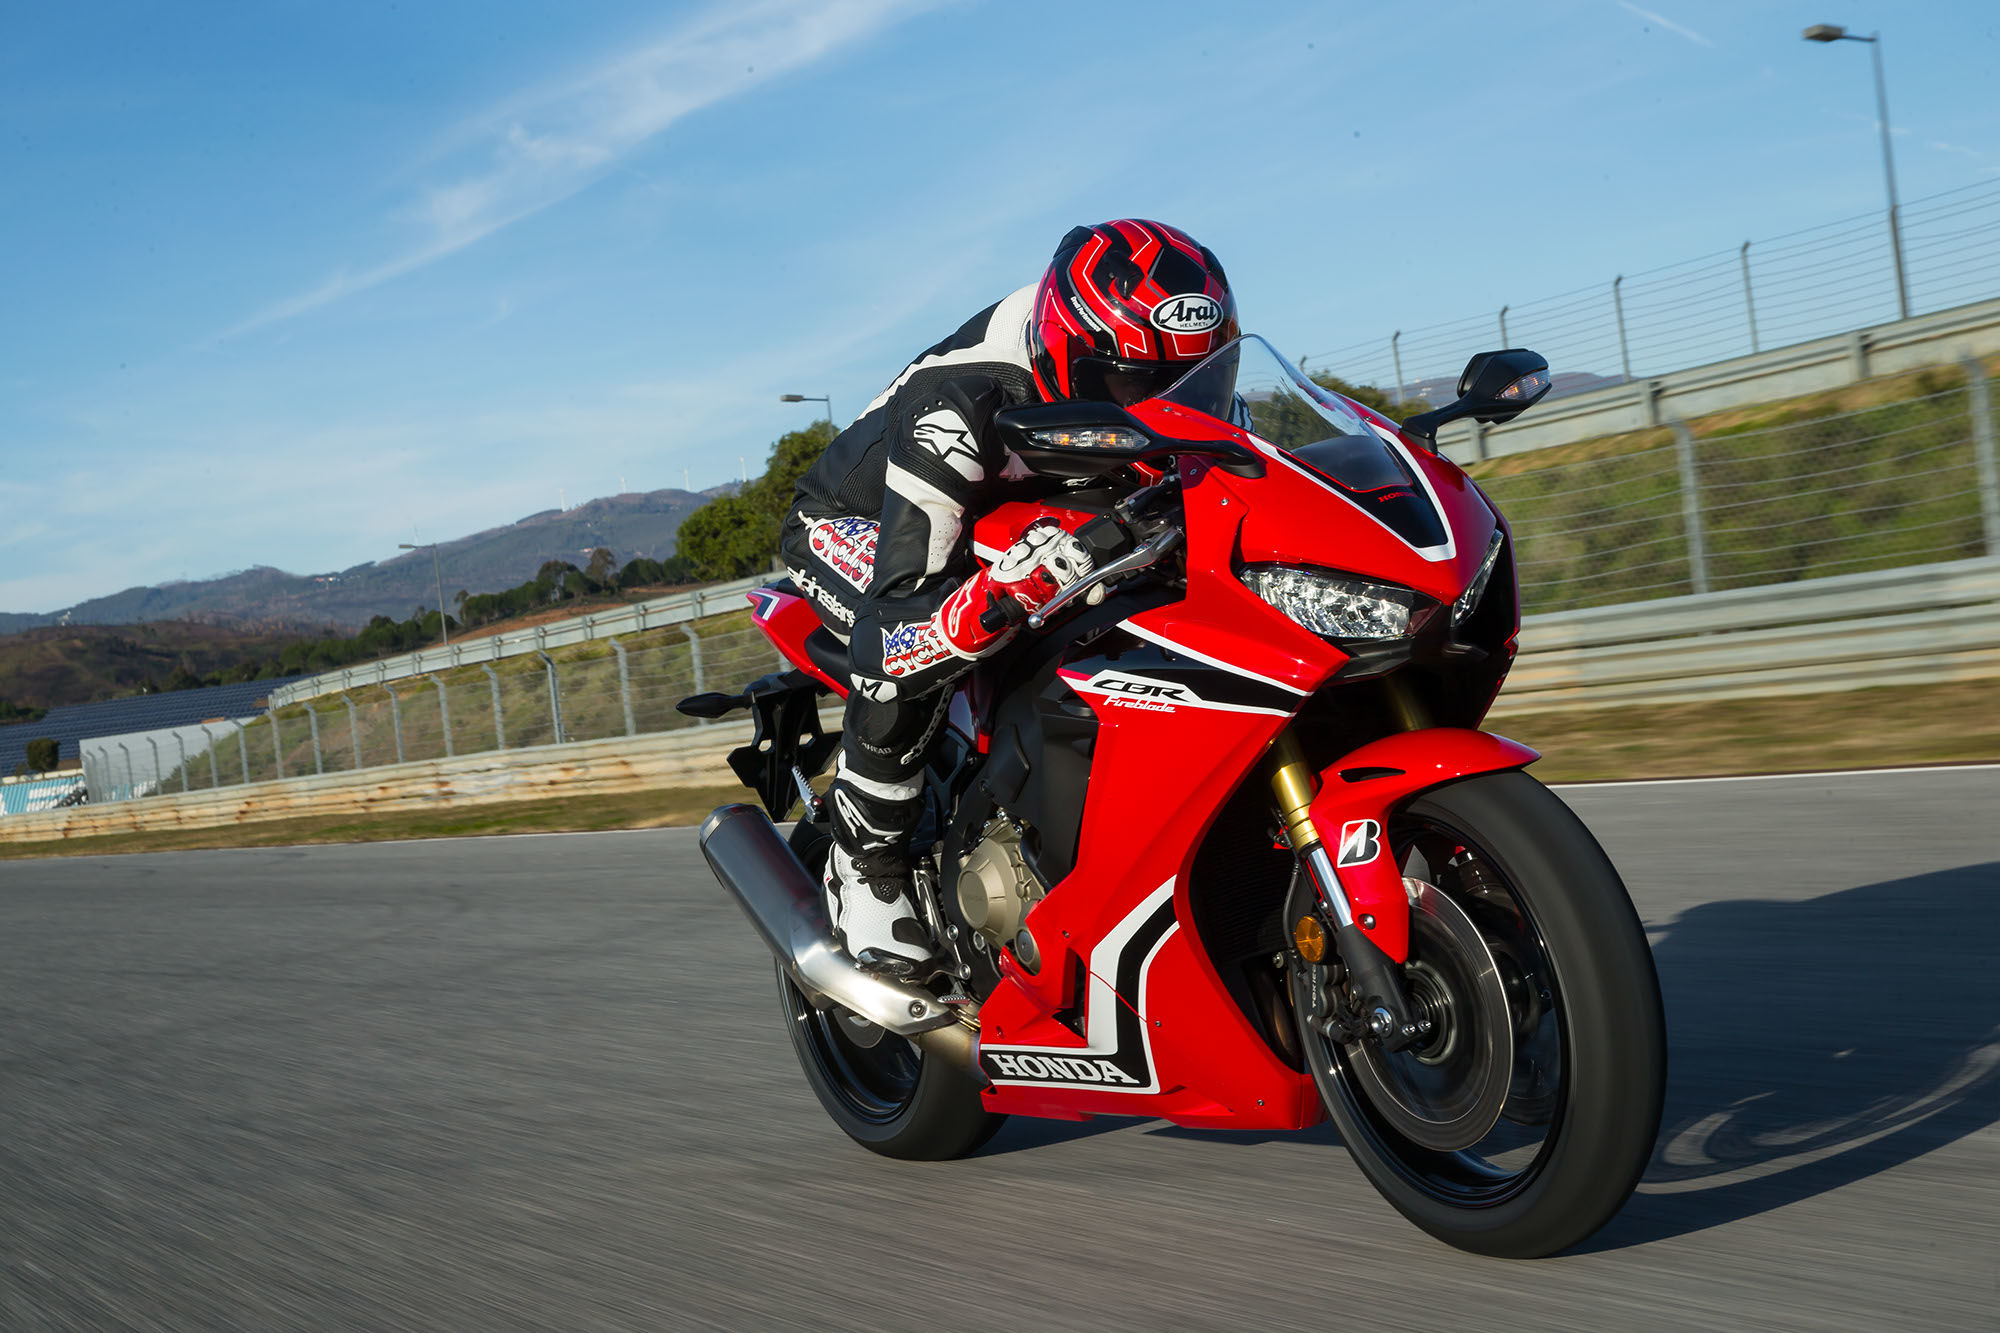 Honda Cbr1000rr Review >> The New Honda CBR 1000 RR Review Super Bike is Here